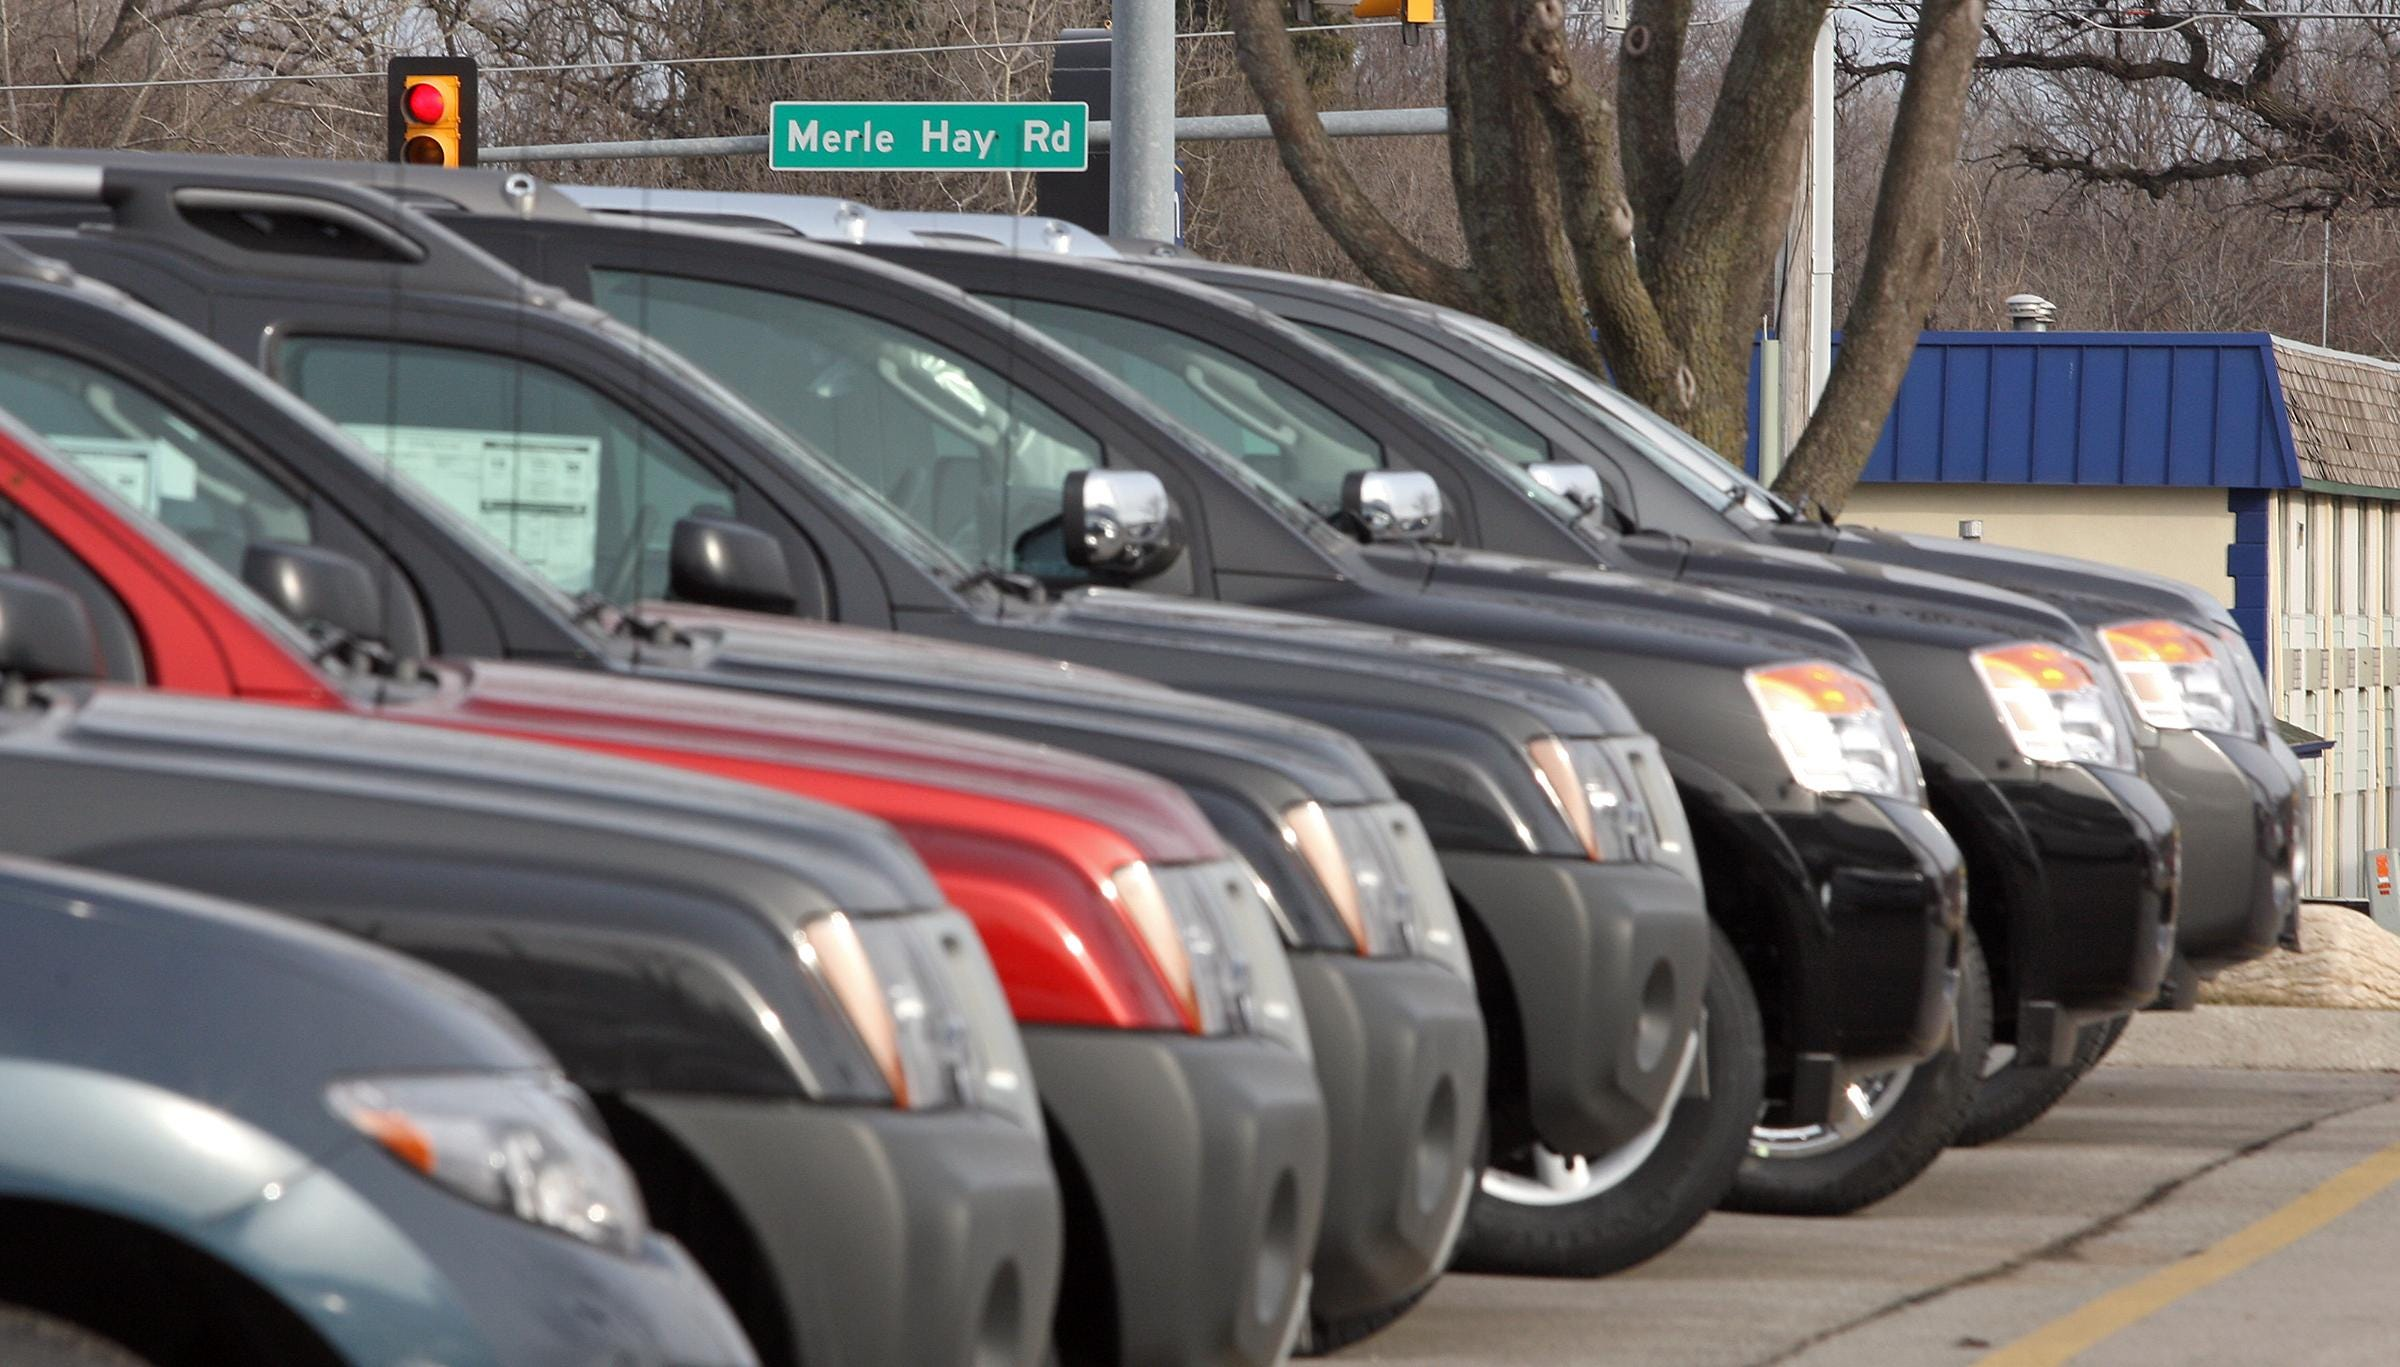 These Are The 10 Most Stolen Vehicles In Iowa, According To National Report